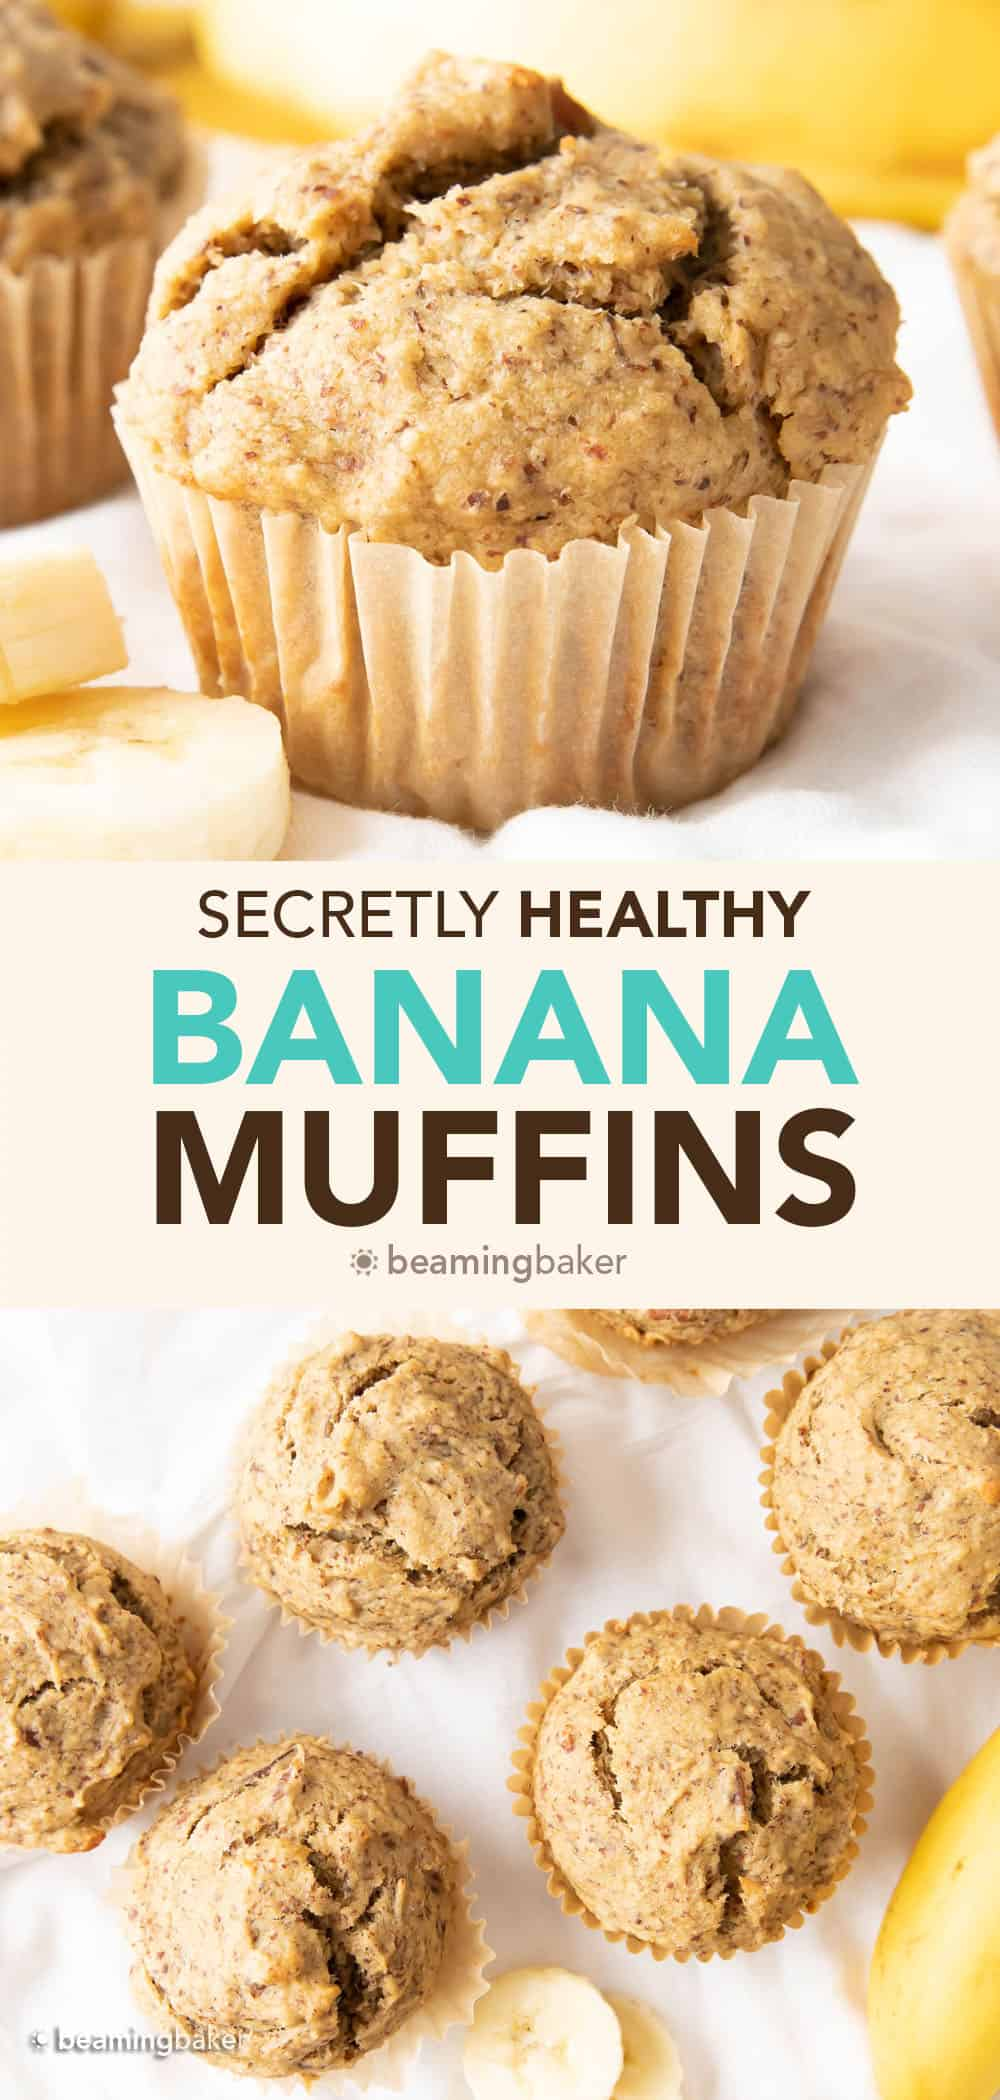 Healthy Banana Muffins Recipe: the BEST healthy banana muffins—secretly healthy, soft 'n dense banana bread-style muffins with lightly sweet, comforting banana flavor. Made with healthy, whole ingredients. #HealthyMuffins #Banana #Muffins #BananaMuffins | Recipe at BeamingBaker.com